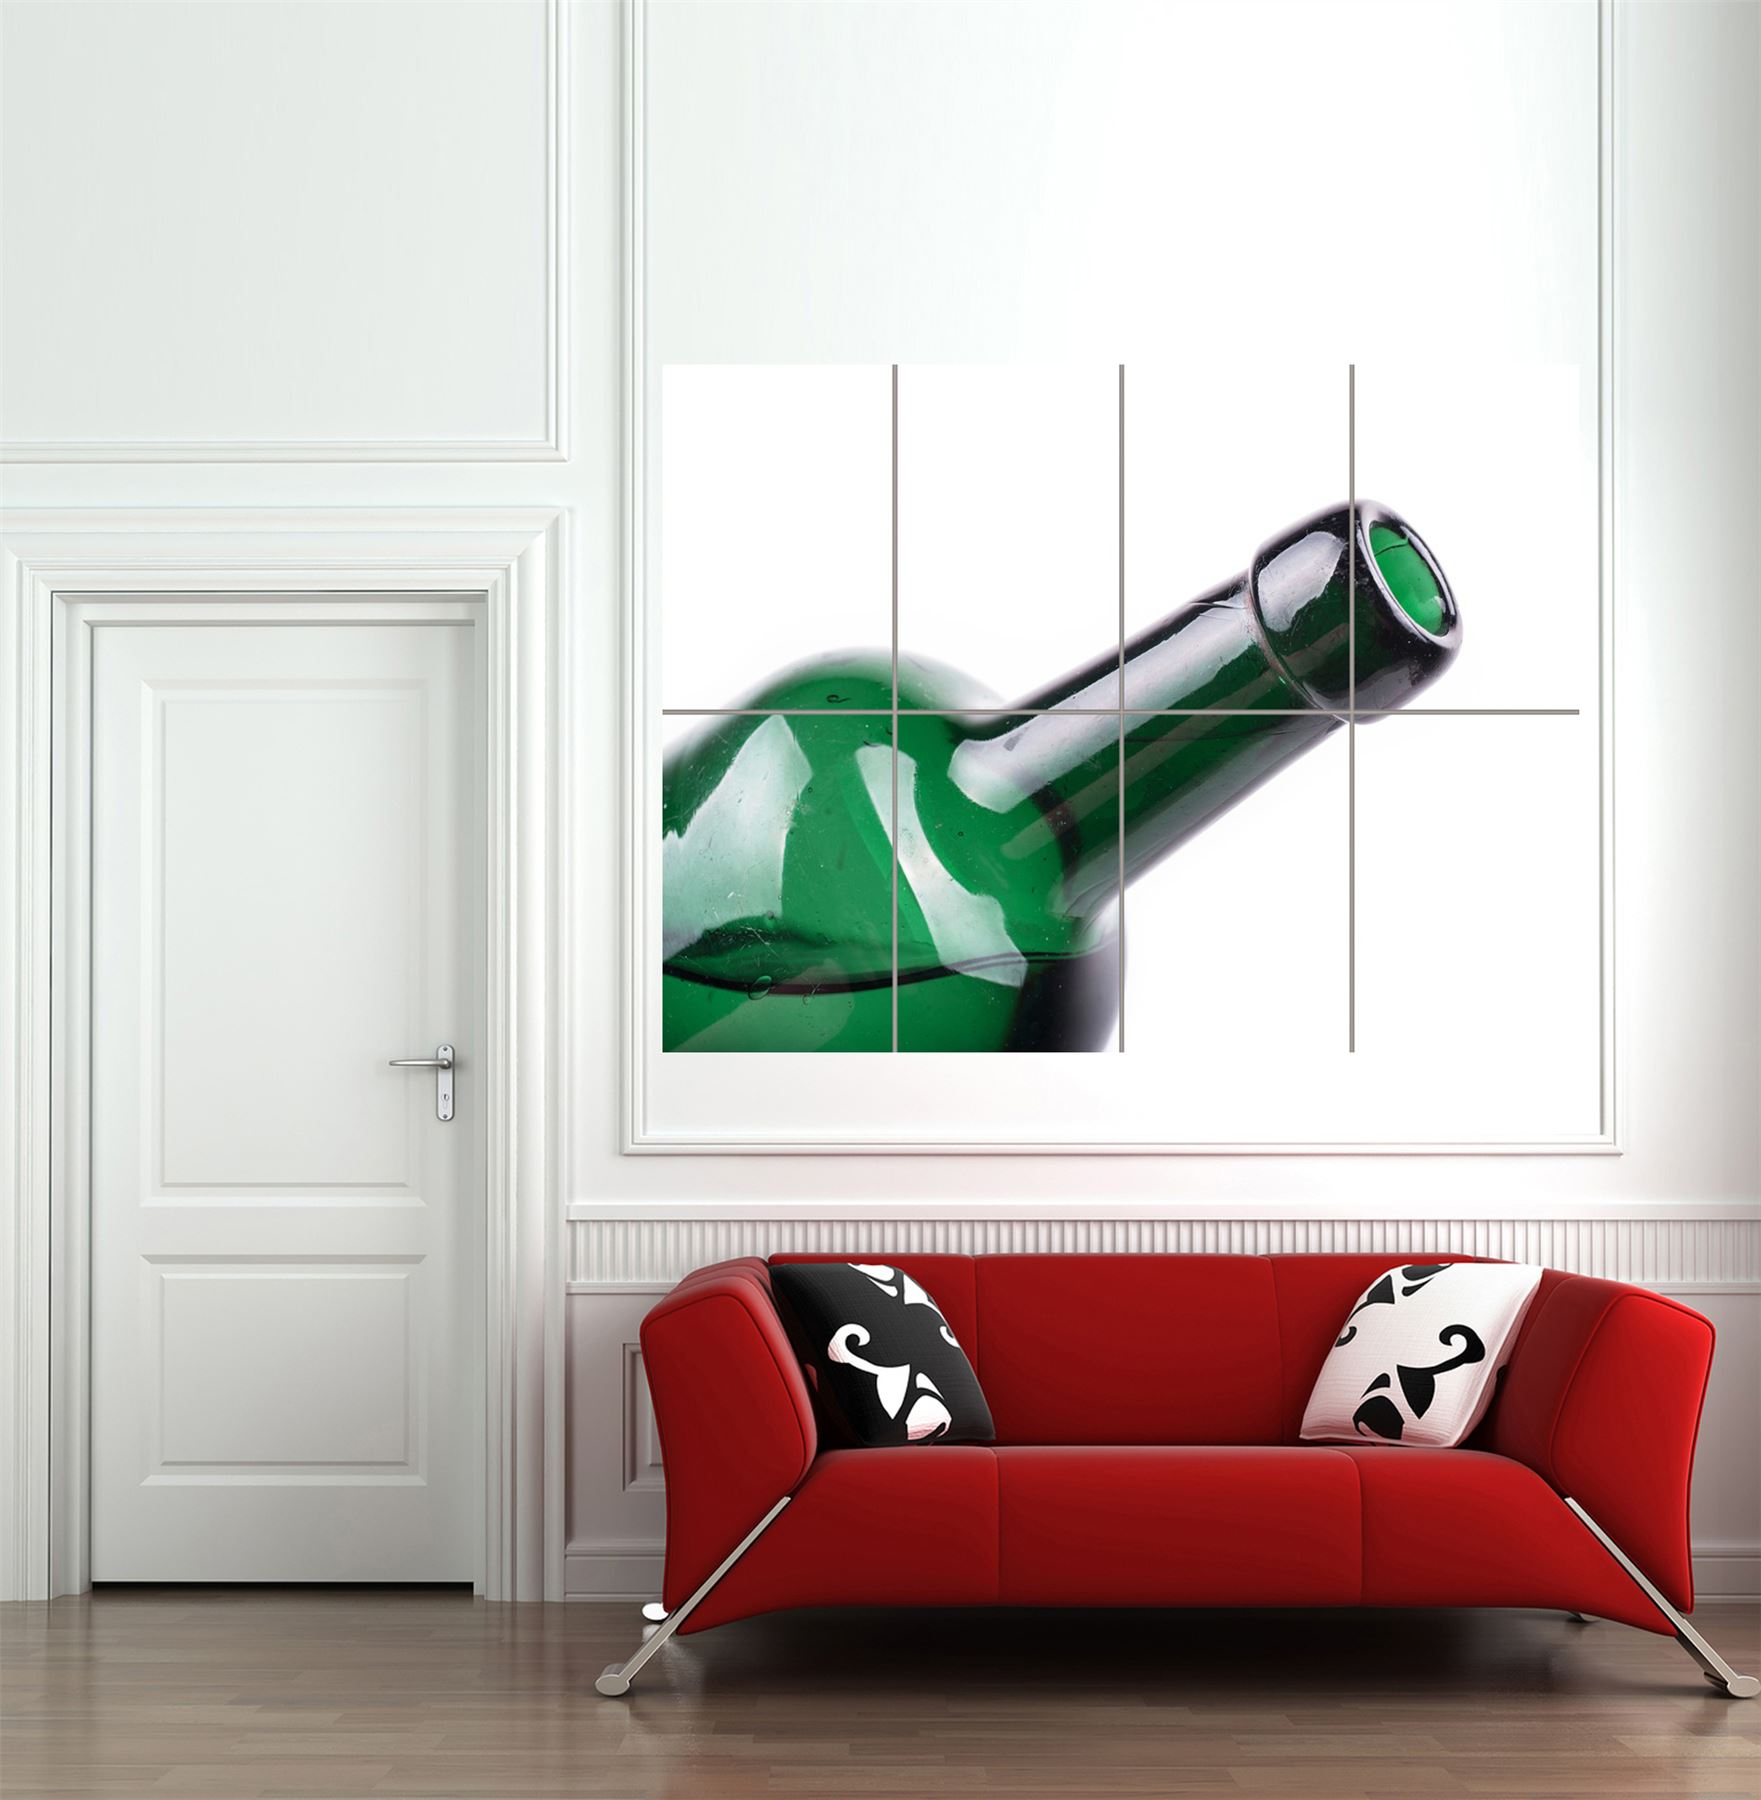 GREEN-BOTTLE-WINE-GLASS-GIANT-WALL-ART-PRINT-HOME-DECOR-POSTER-MP1931